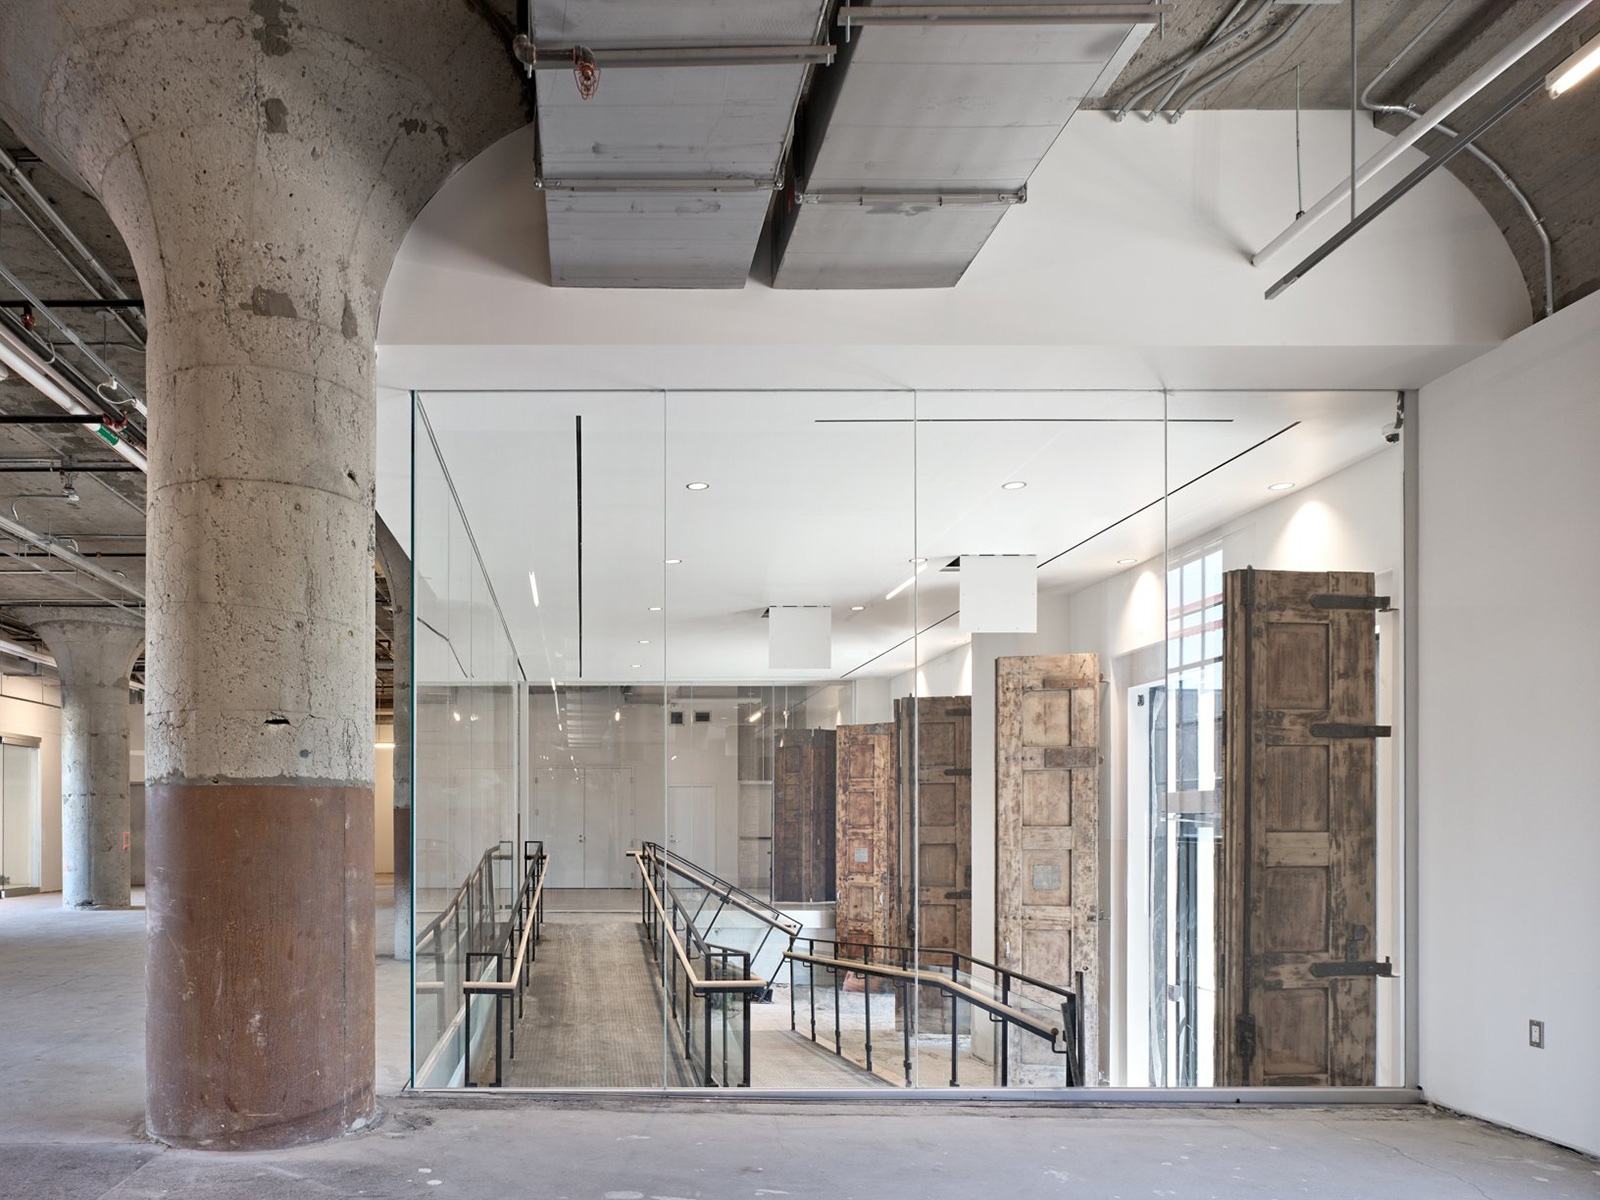 MOCA- Museum of Contemporary Art in Toronto, radical adaptive reuse project